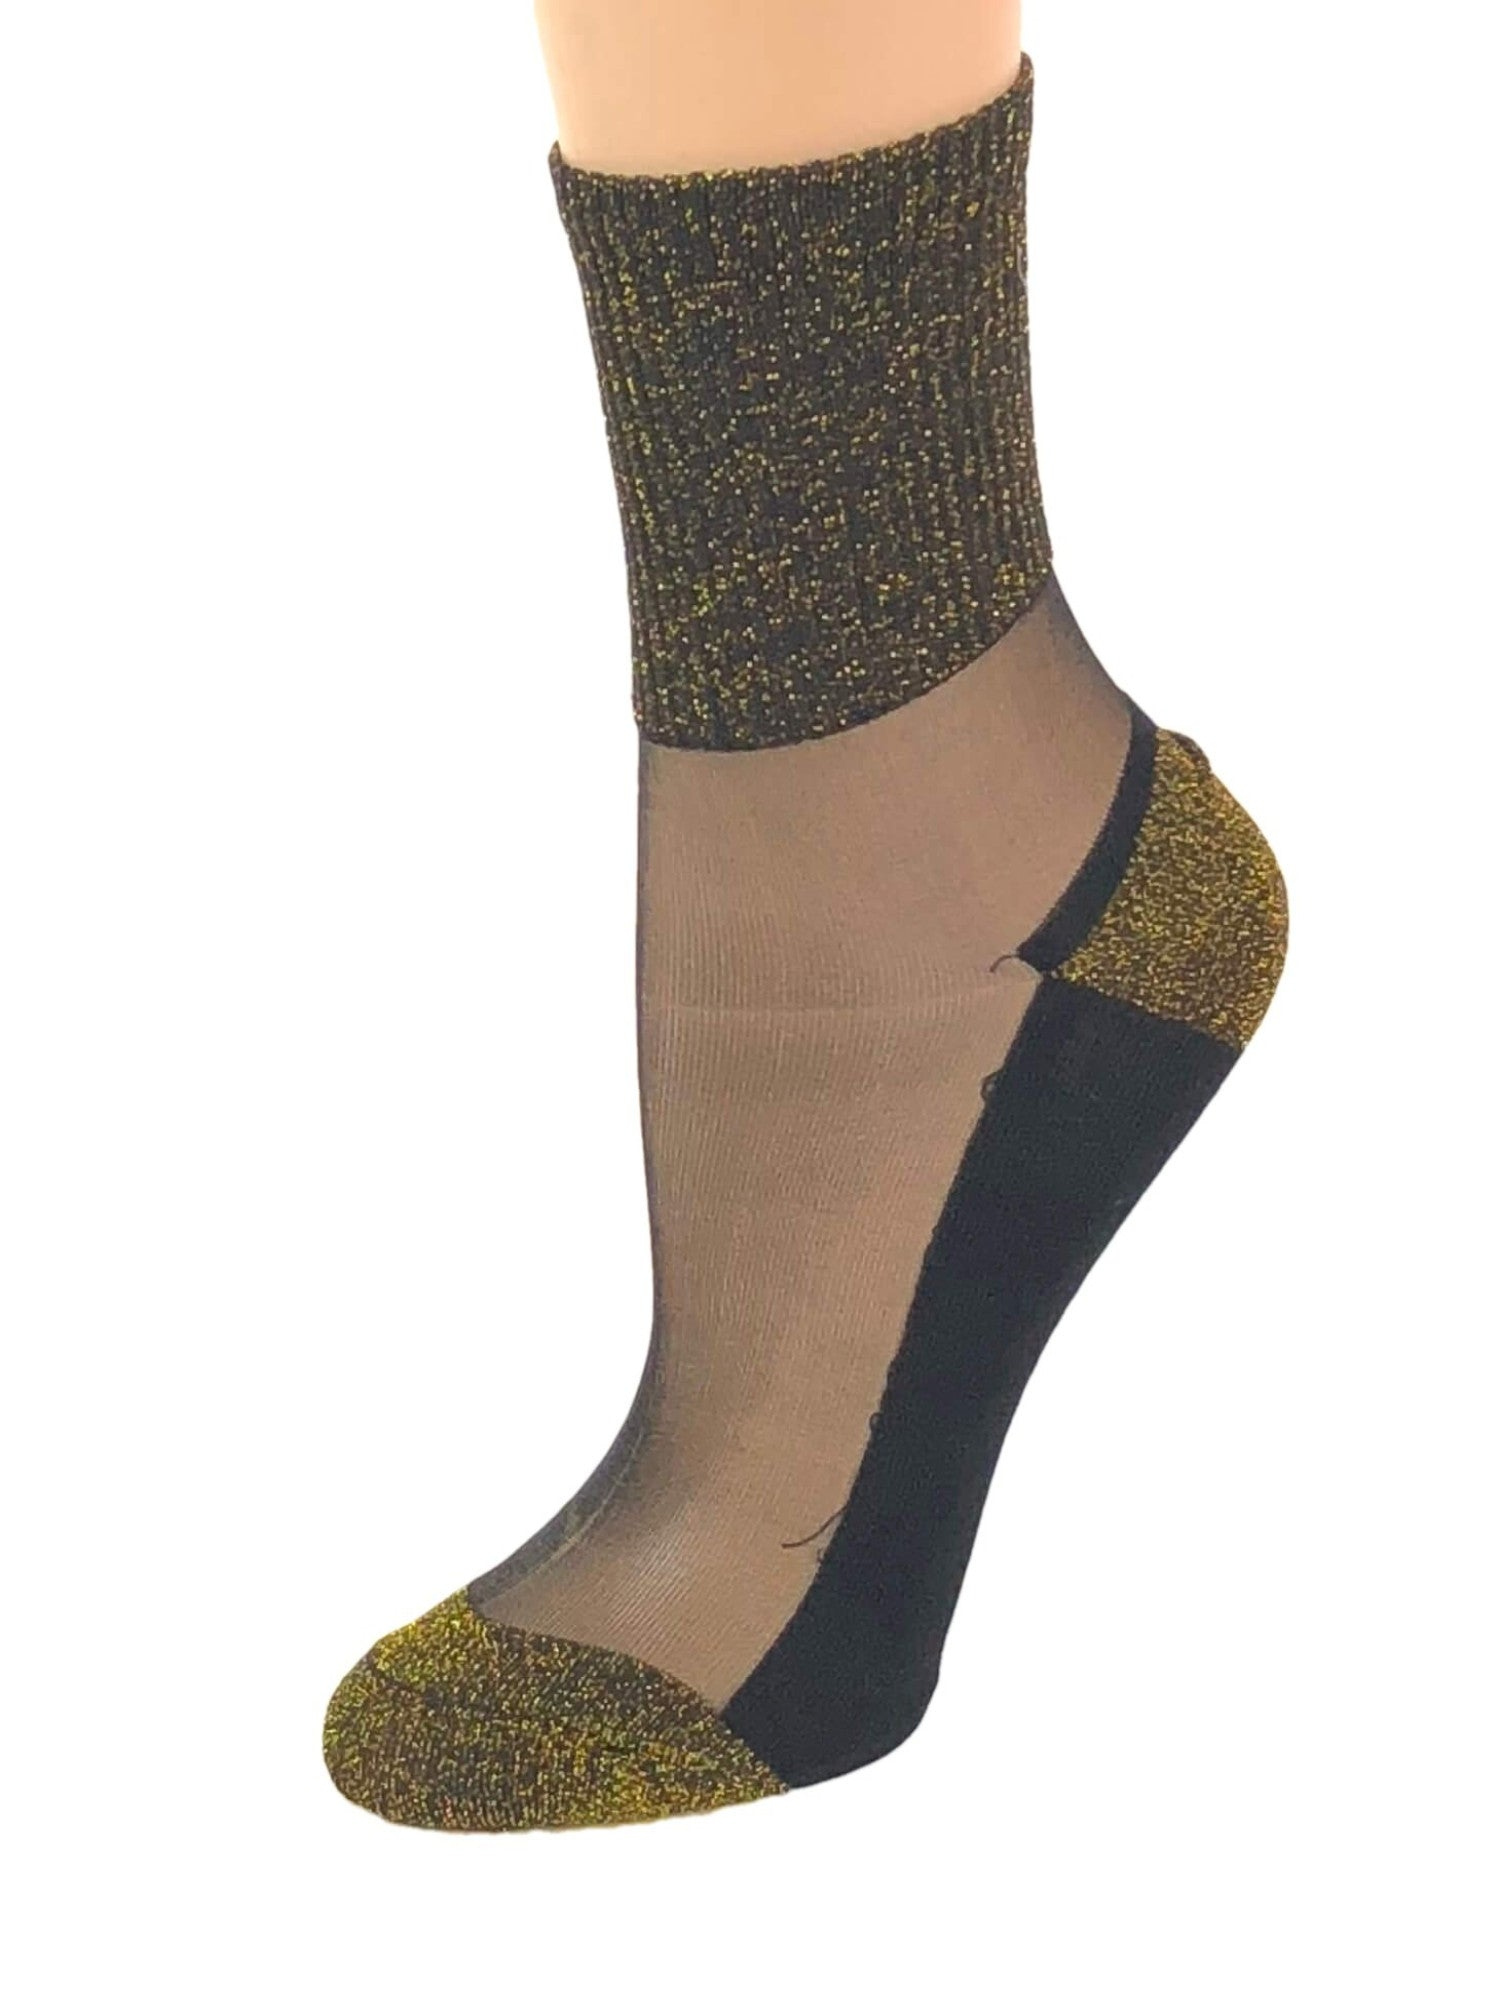 Gorgeous Golden Glitter Socks - Global Trendz Fashion®